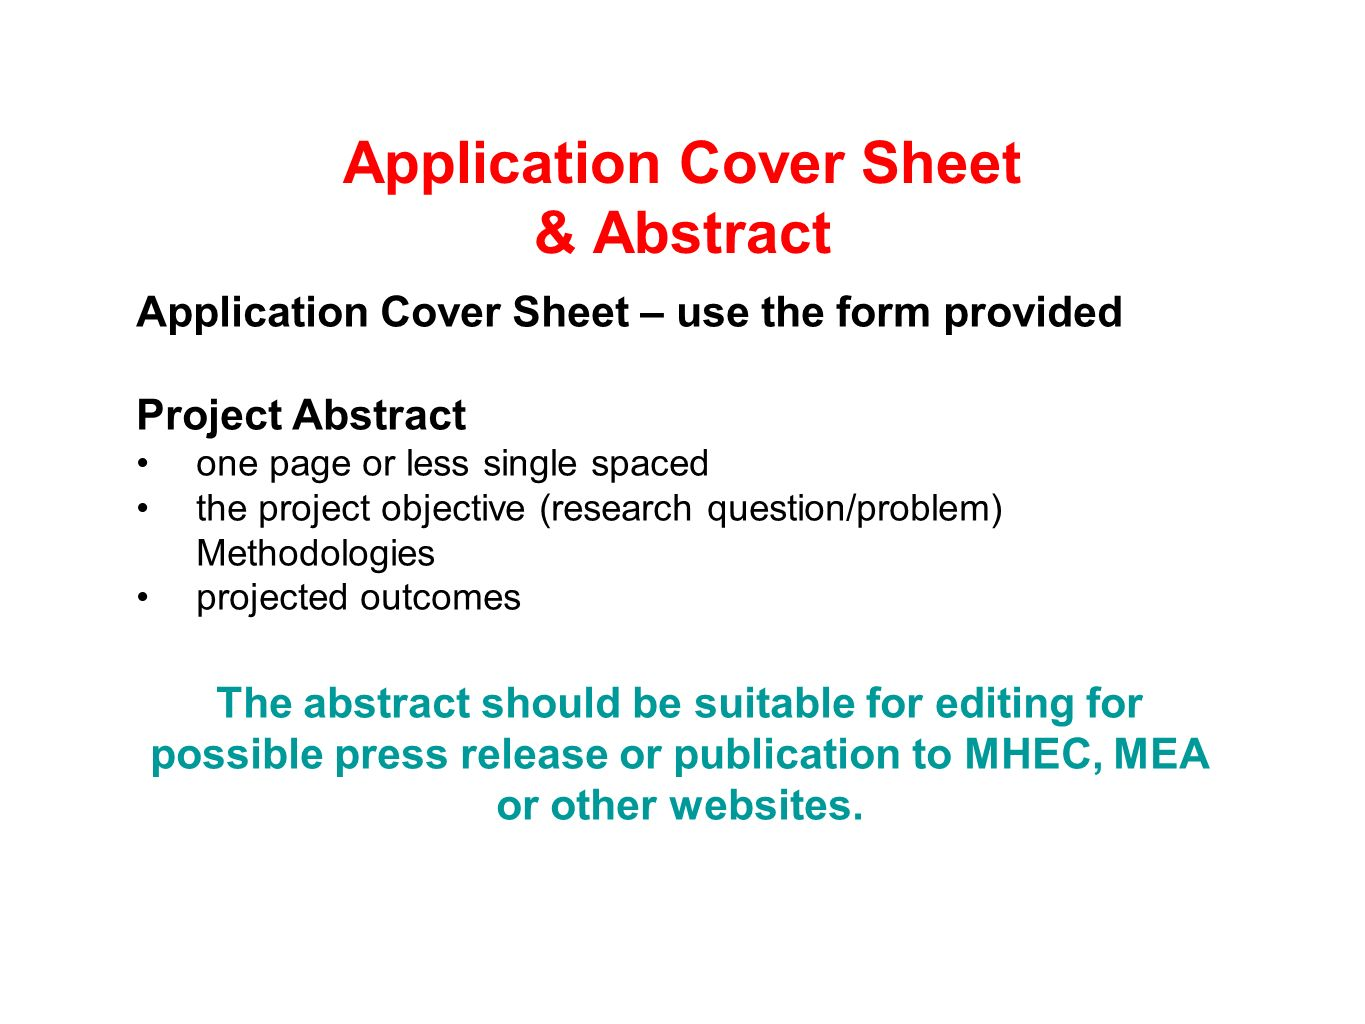 Application Cover Sheet & Abstract Application Cover Sheet – use the form provided Project Abstract one page or less single spaced the project objective (research question/problem) Methodologies projected outcomes The abstract should be suitable for editing for possible press release or publication to MHEC, MEA or other websites.